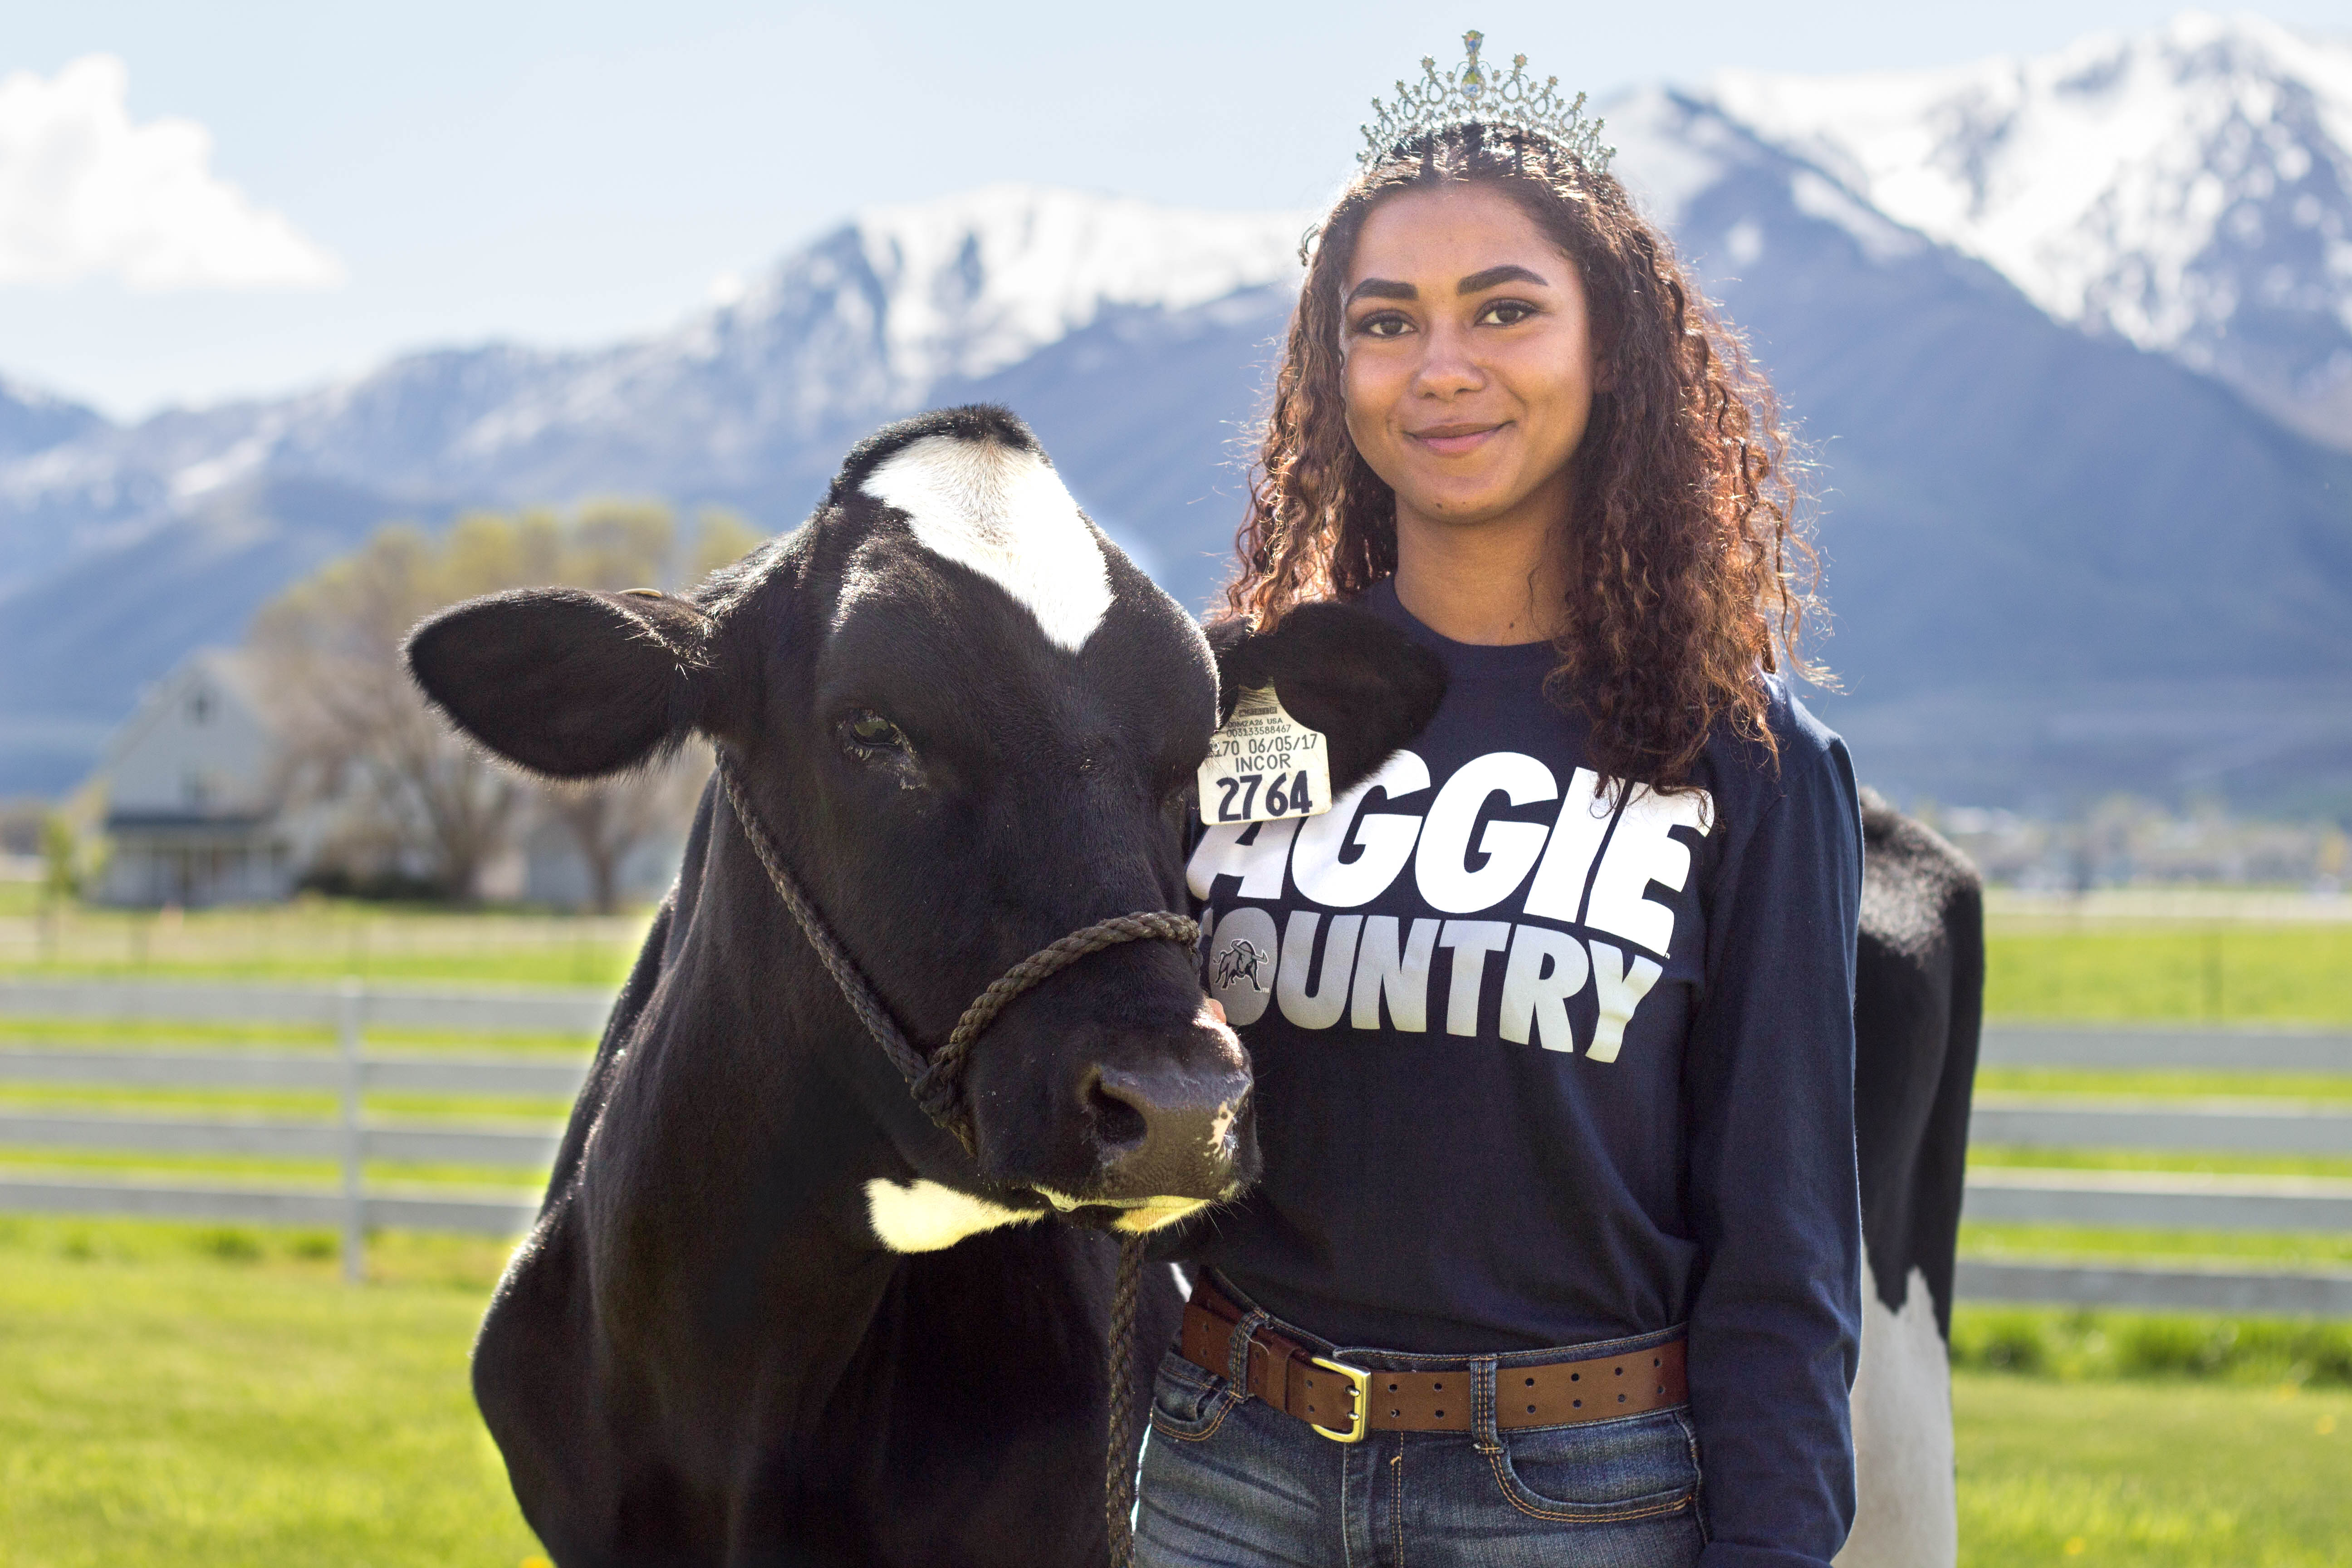 "<strong>""WHO AM I?"" </strong><br /> The New Miss USU Tells Her Truth"